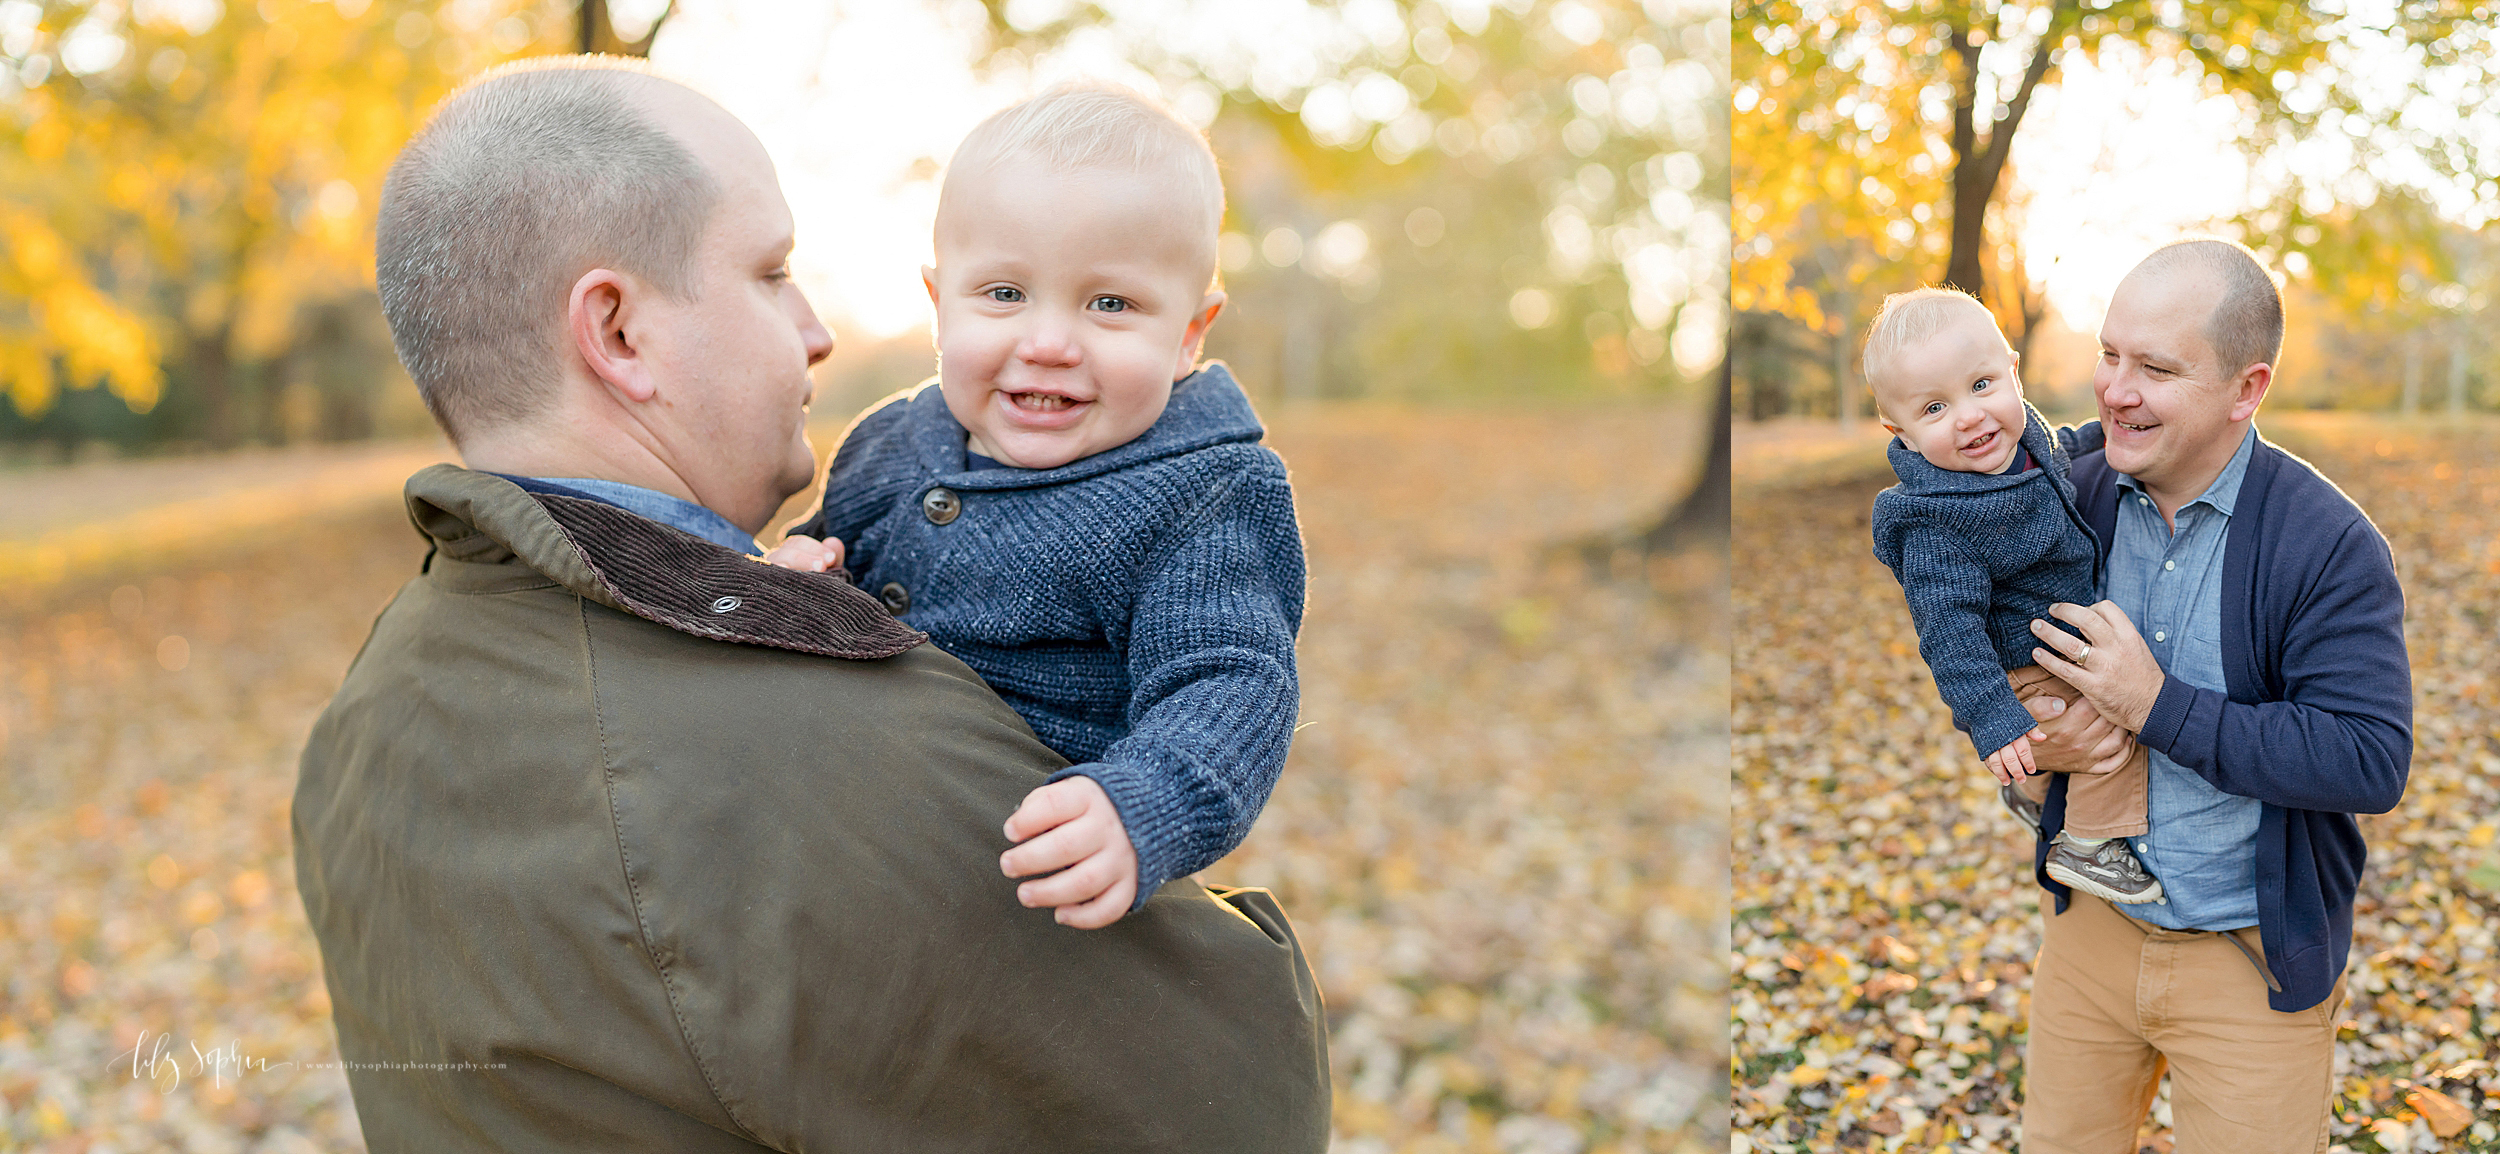 atlanta-midtown-brookhaven-decatur-lily-sophia-photography-photographer-portraits-grant-park-family-sunset-fall-outdoor-session-brothers-toddler-baby_0153.jpg